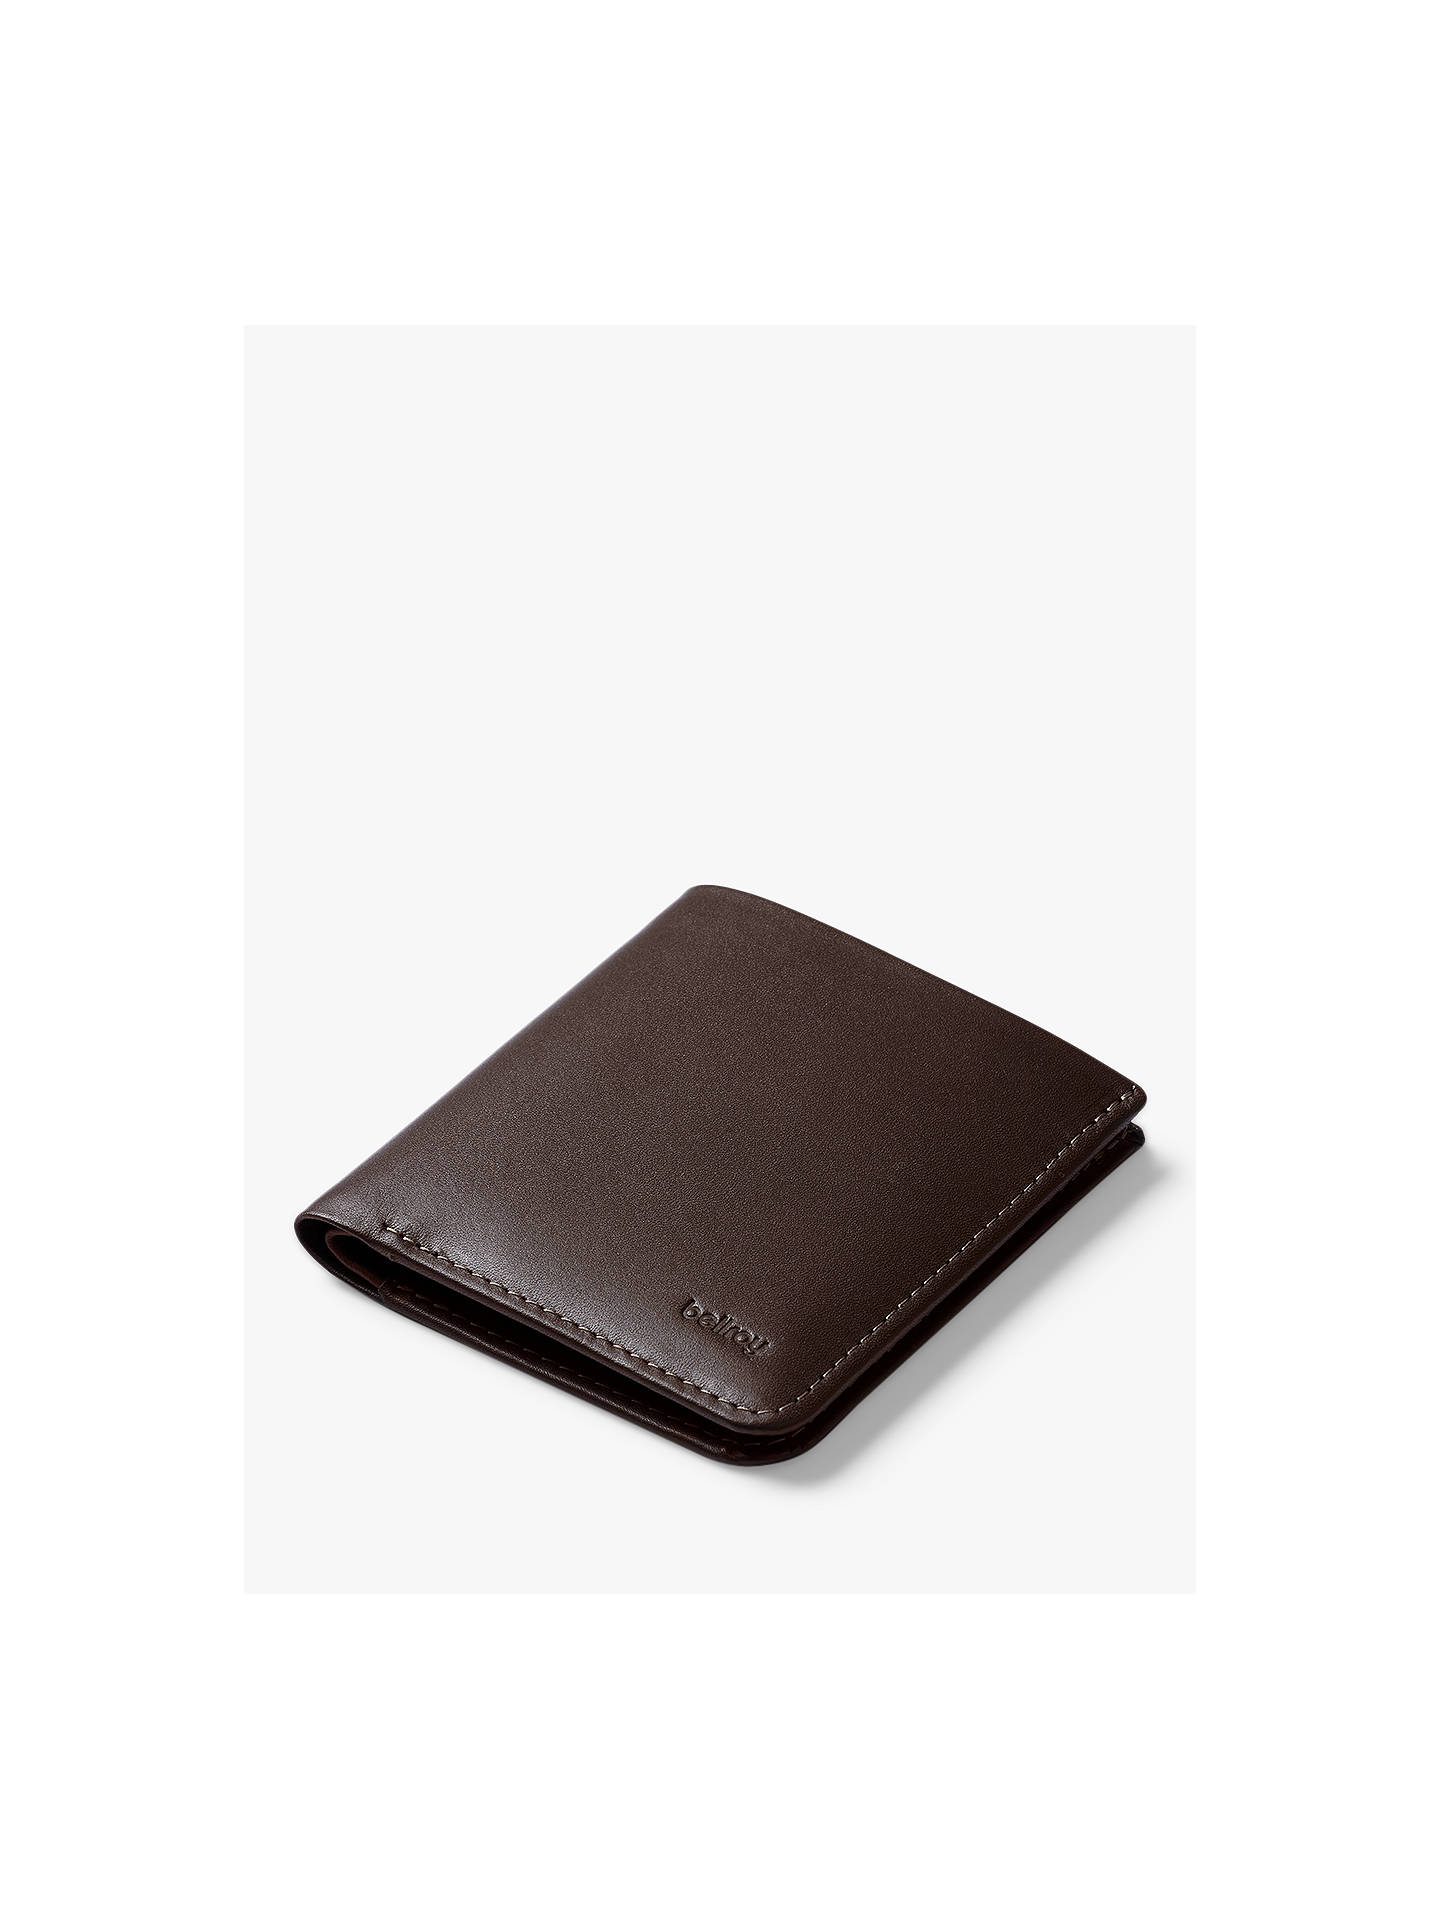 BuyBellroy The Tall Leather Wallet, Java Online at johnlewis.com